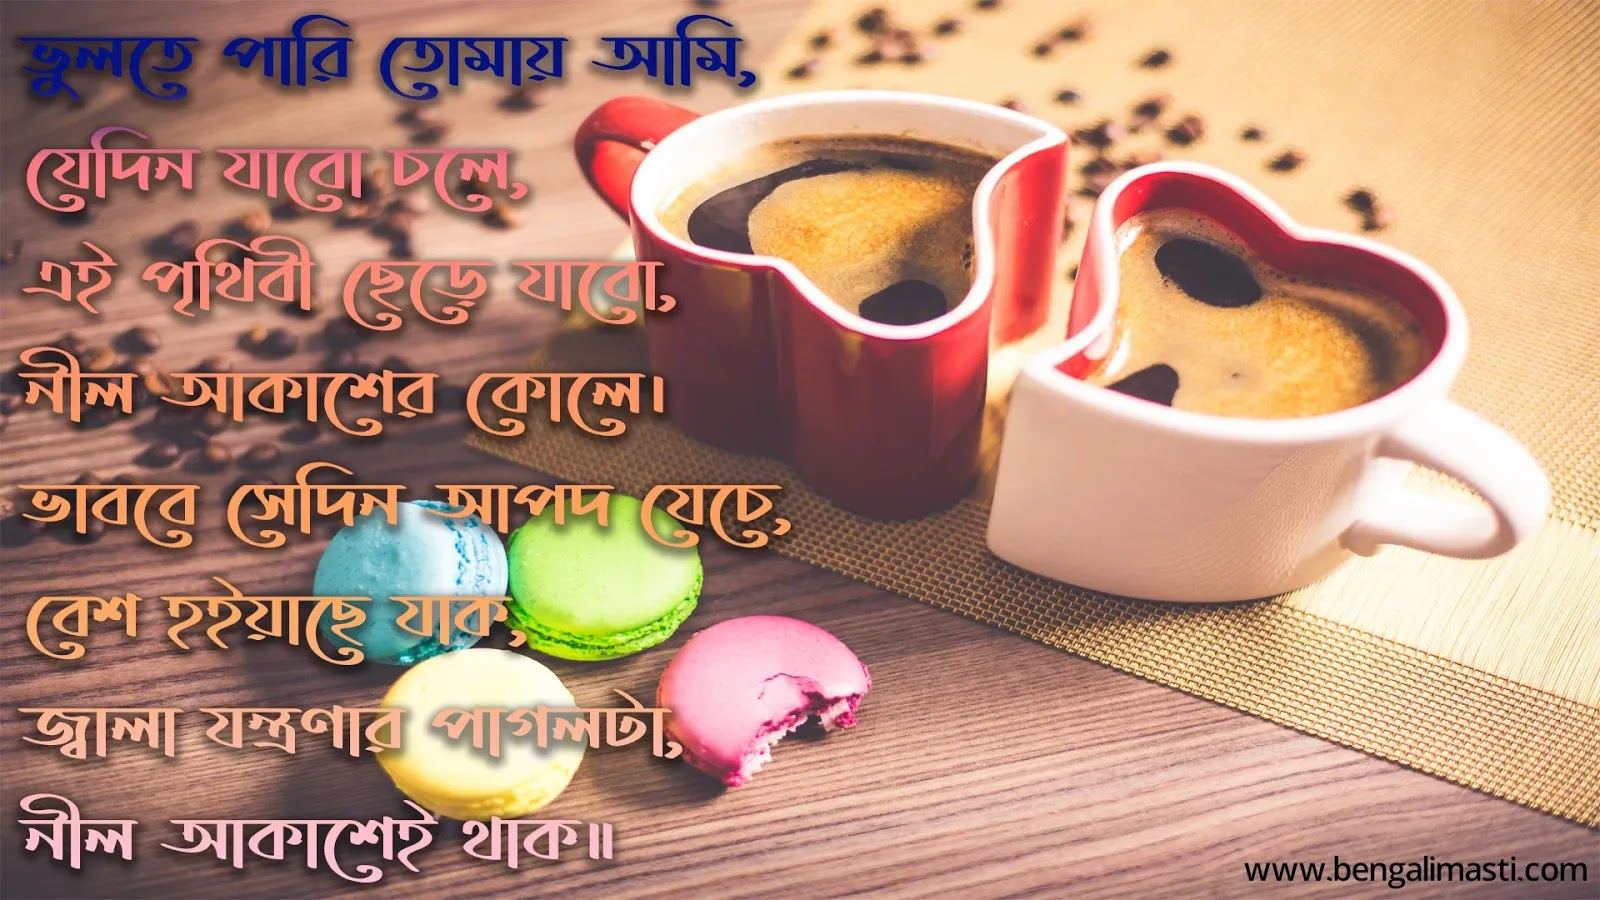 romantic quotes in bangla